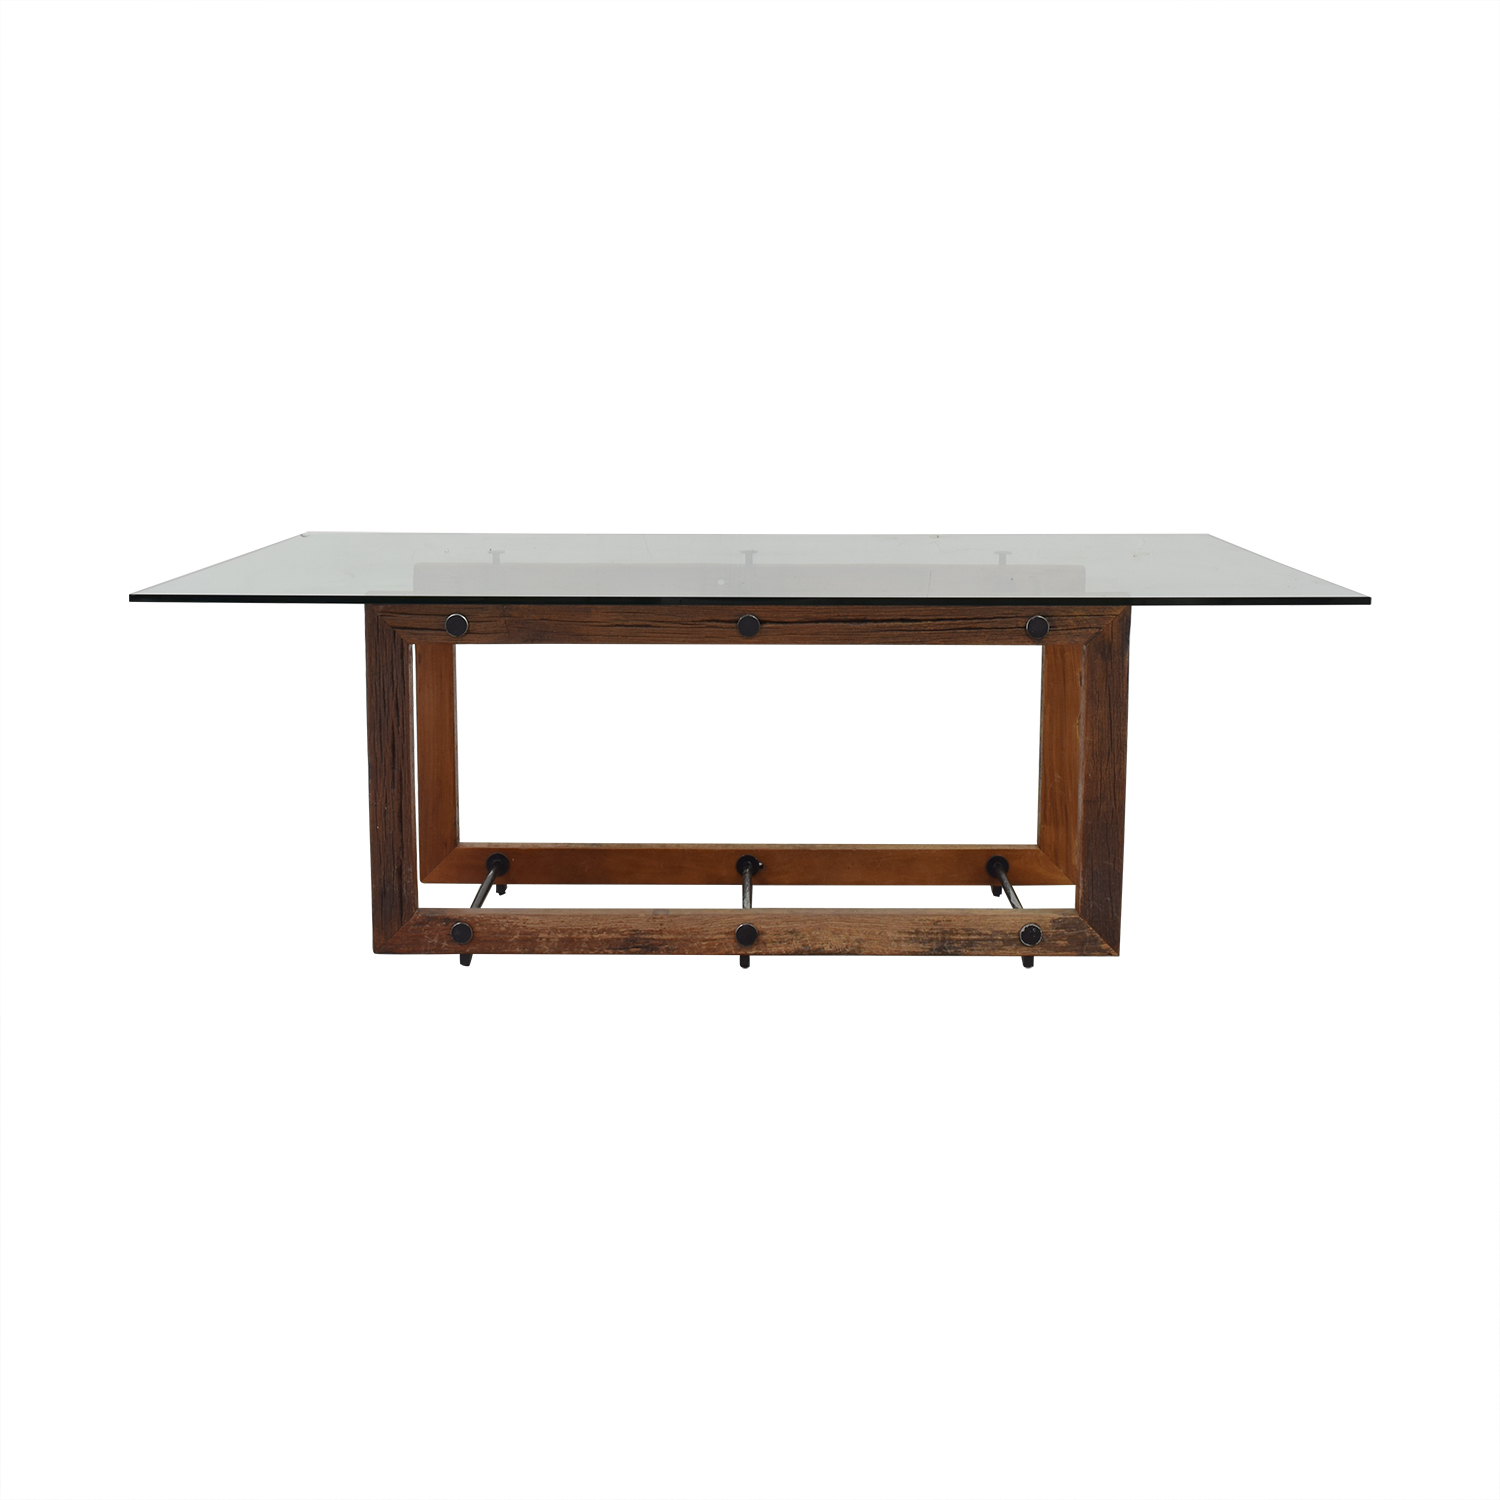 buy ABC Carpet & Home ABC Carpet & Home Glass Dining Table online